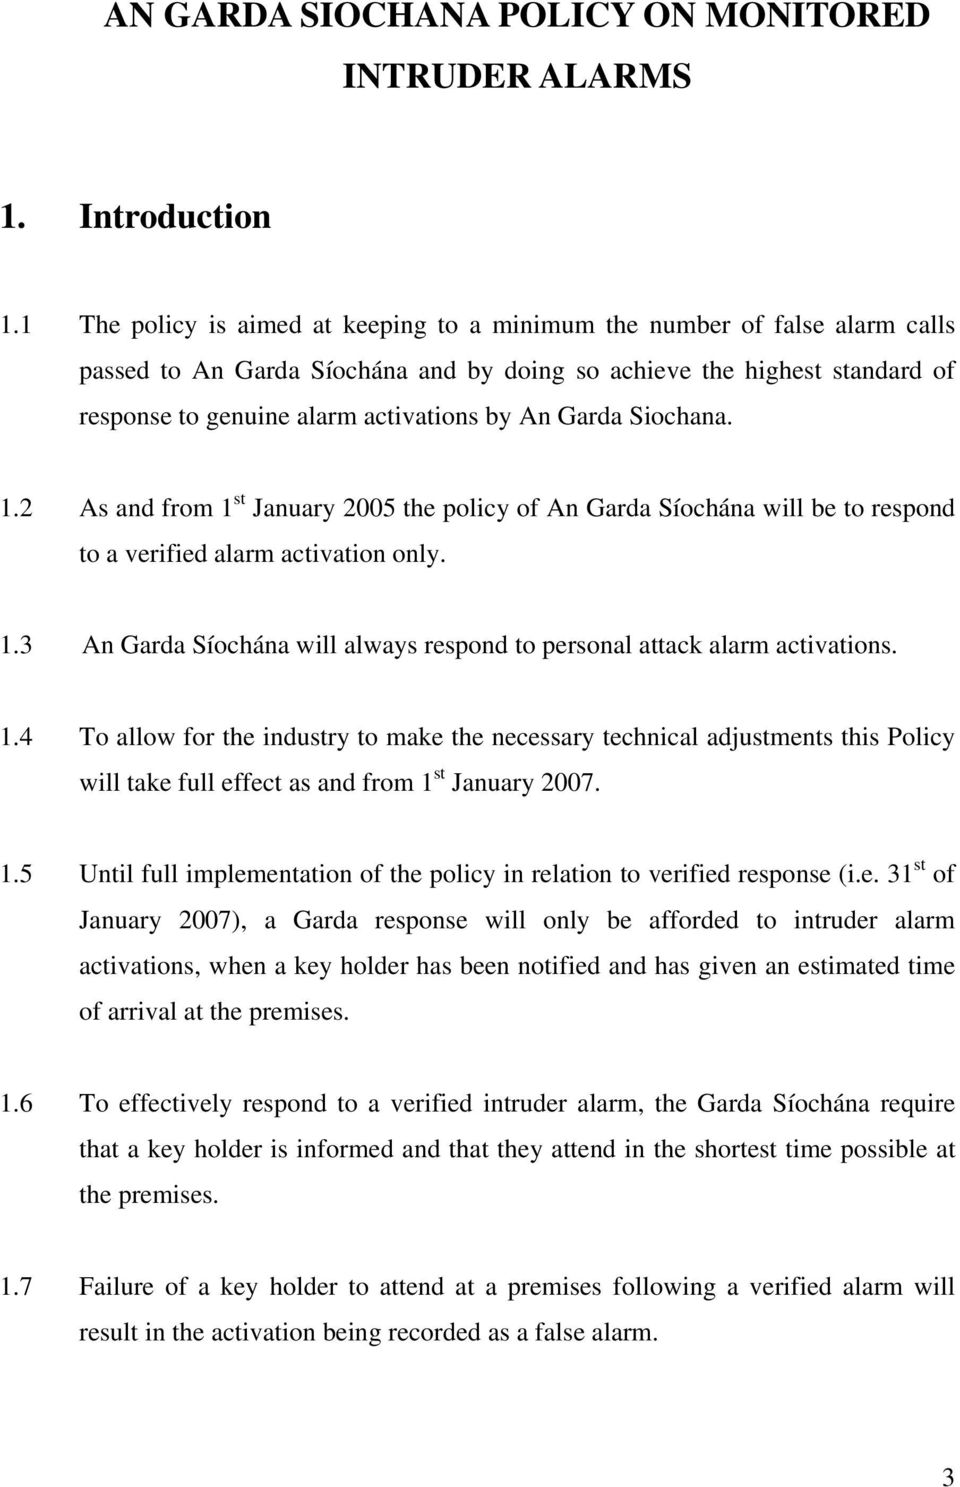 Garda Siochana. 1.2 As and from 1 st January 2005 the policy of An Garda Síochána will be to respond to a verified alarm activation only. 1.3 An Garda Síochána will always respond to personal attack alarm activations.